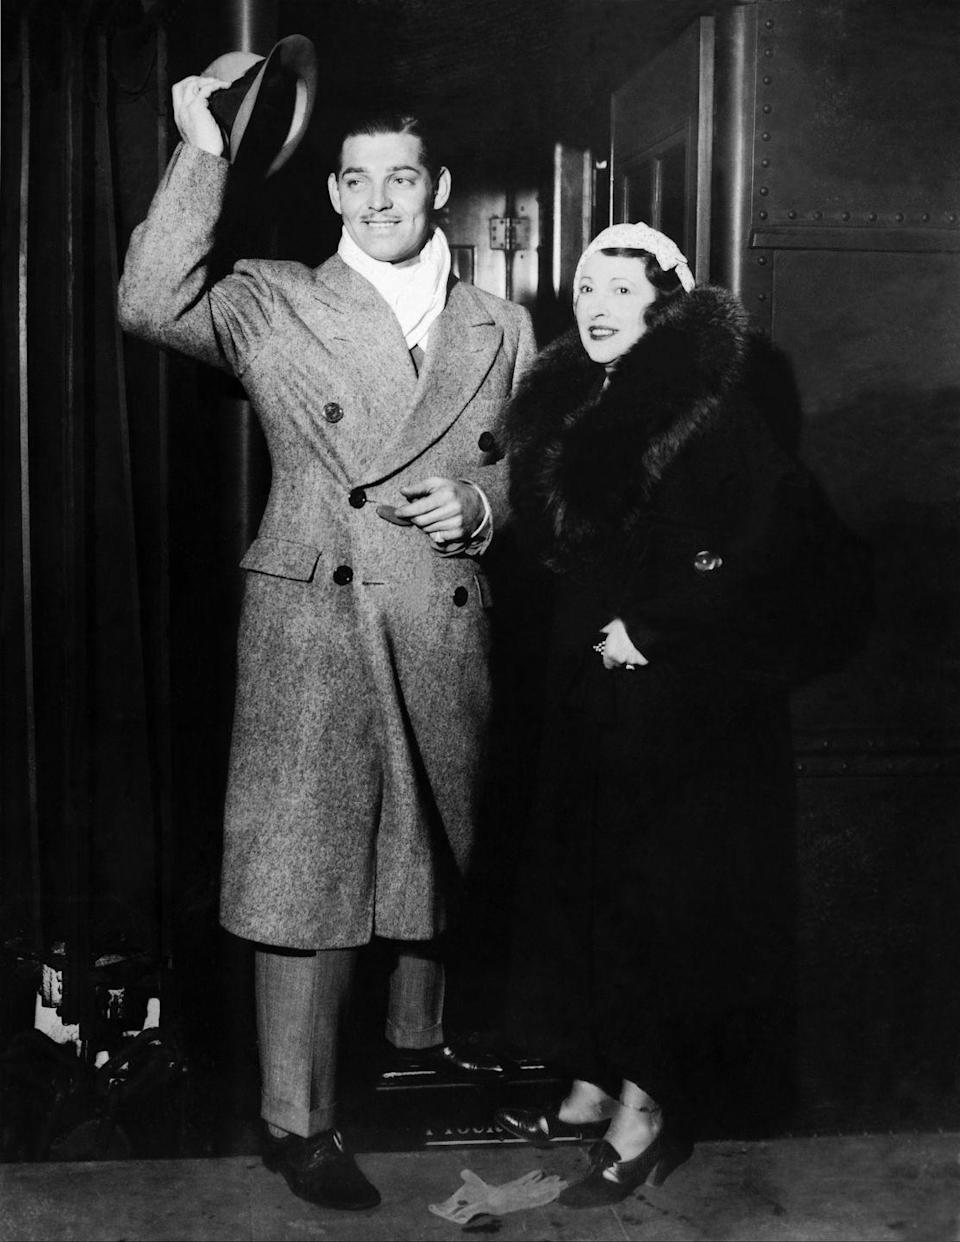 <p>American actor Clark Gable and his wife Ria Langham arriving at Grand Central terminal in New York.</p><p>Other celebrity visitors this year: Kitty Carlisle, Peggy Hopkins Joyce.</p>